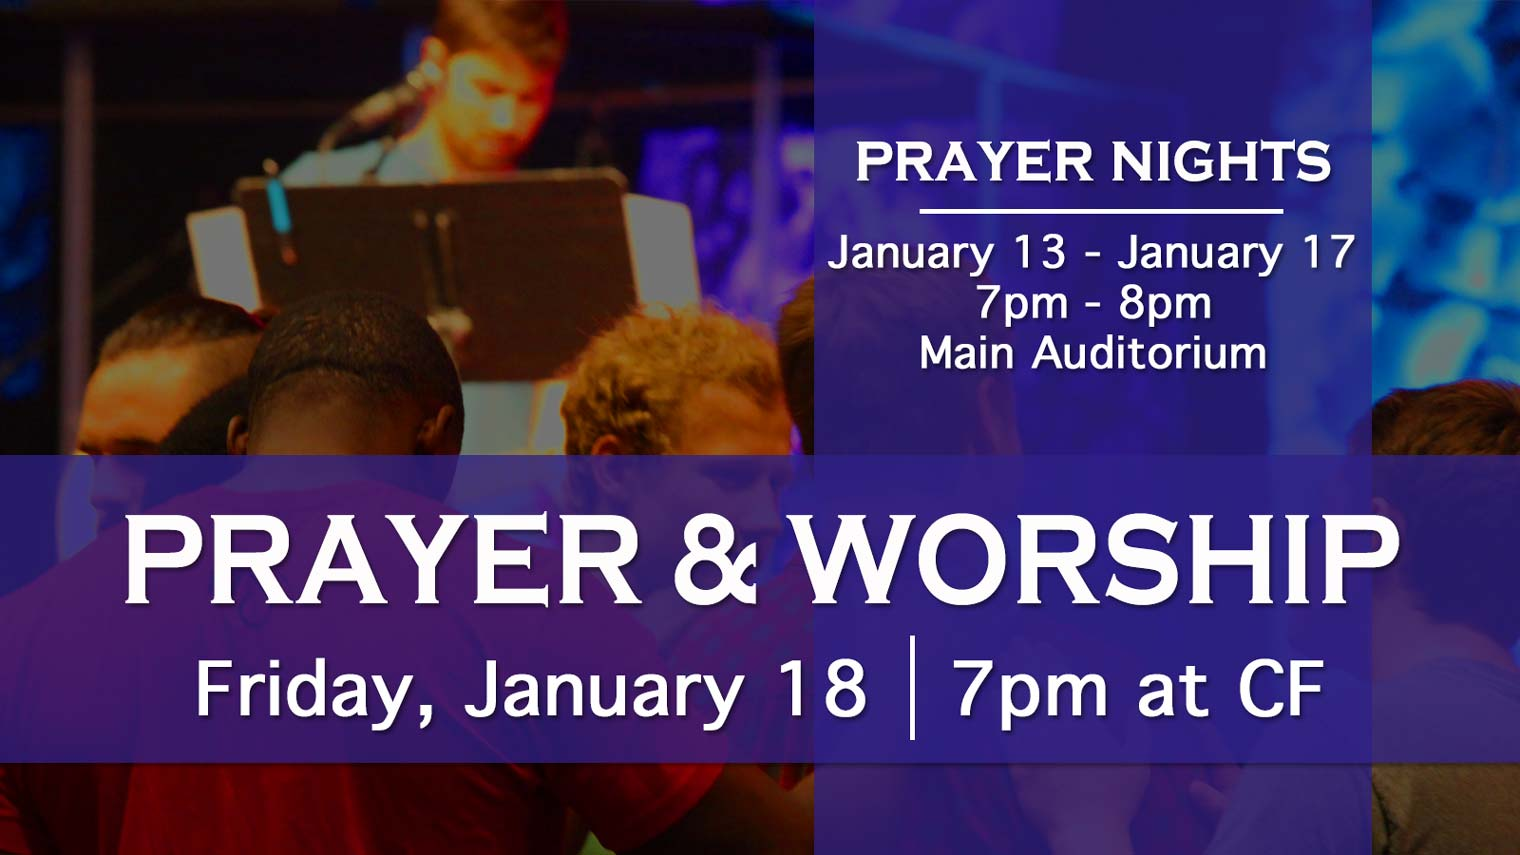 Week of Prayer Nights and Worship January 2019 at Christian Fellowship Church in Columbia Missouri